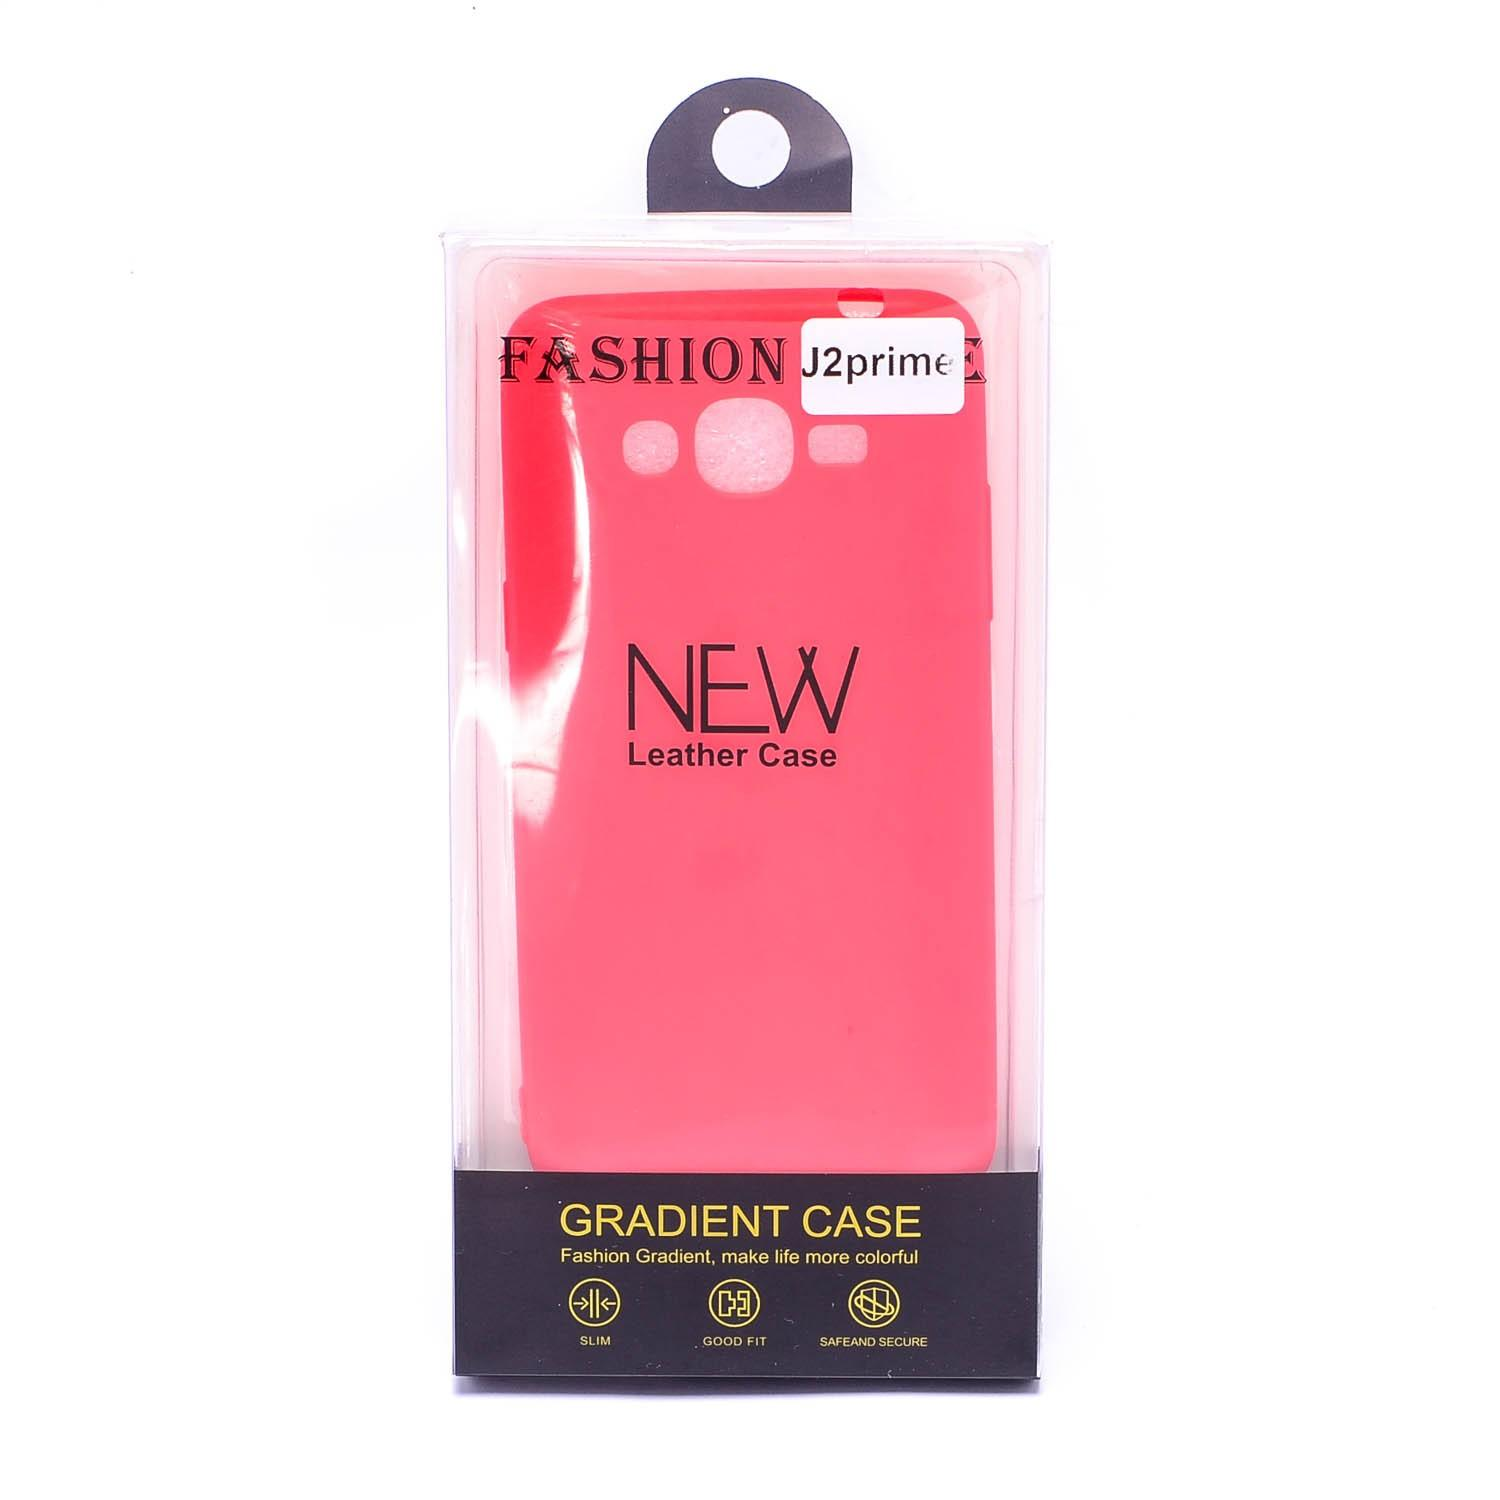 Glamorosa Mobile Soft Silicone Matte Fashion Case for SamsungGalaxy J2 Prime Red